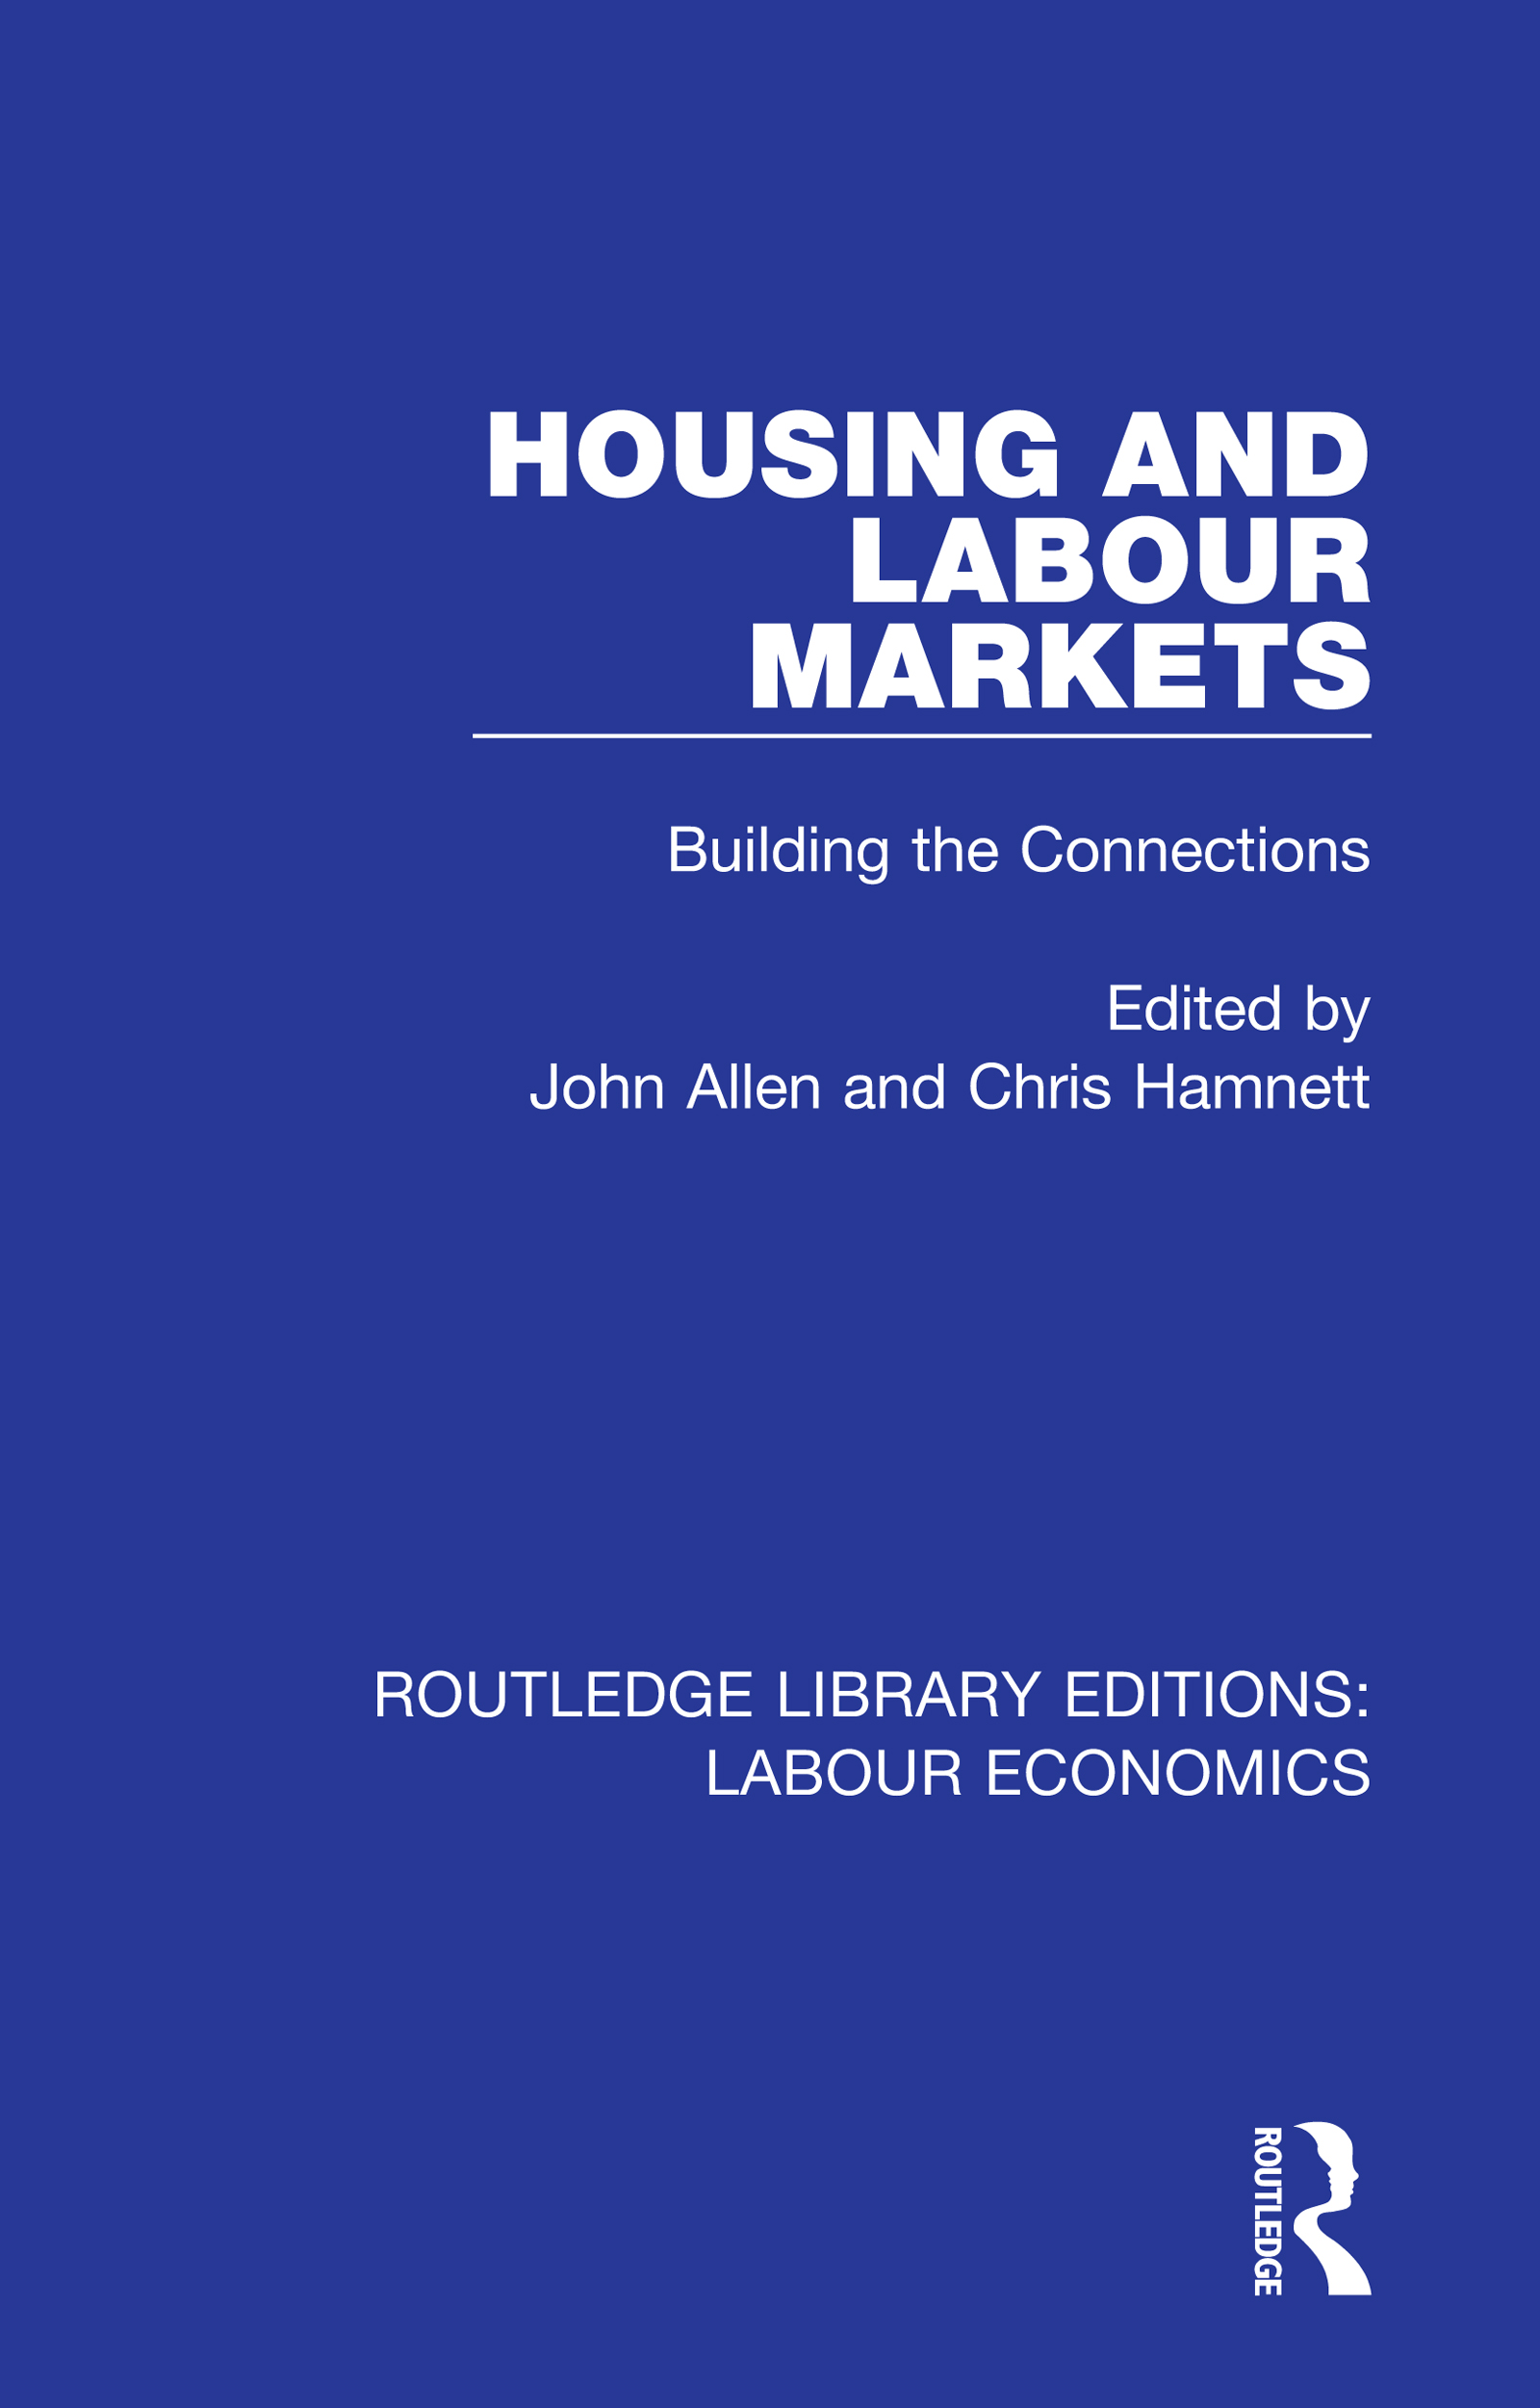 Housing and Labour Markets